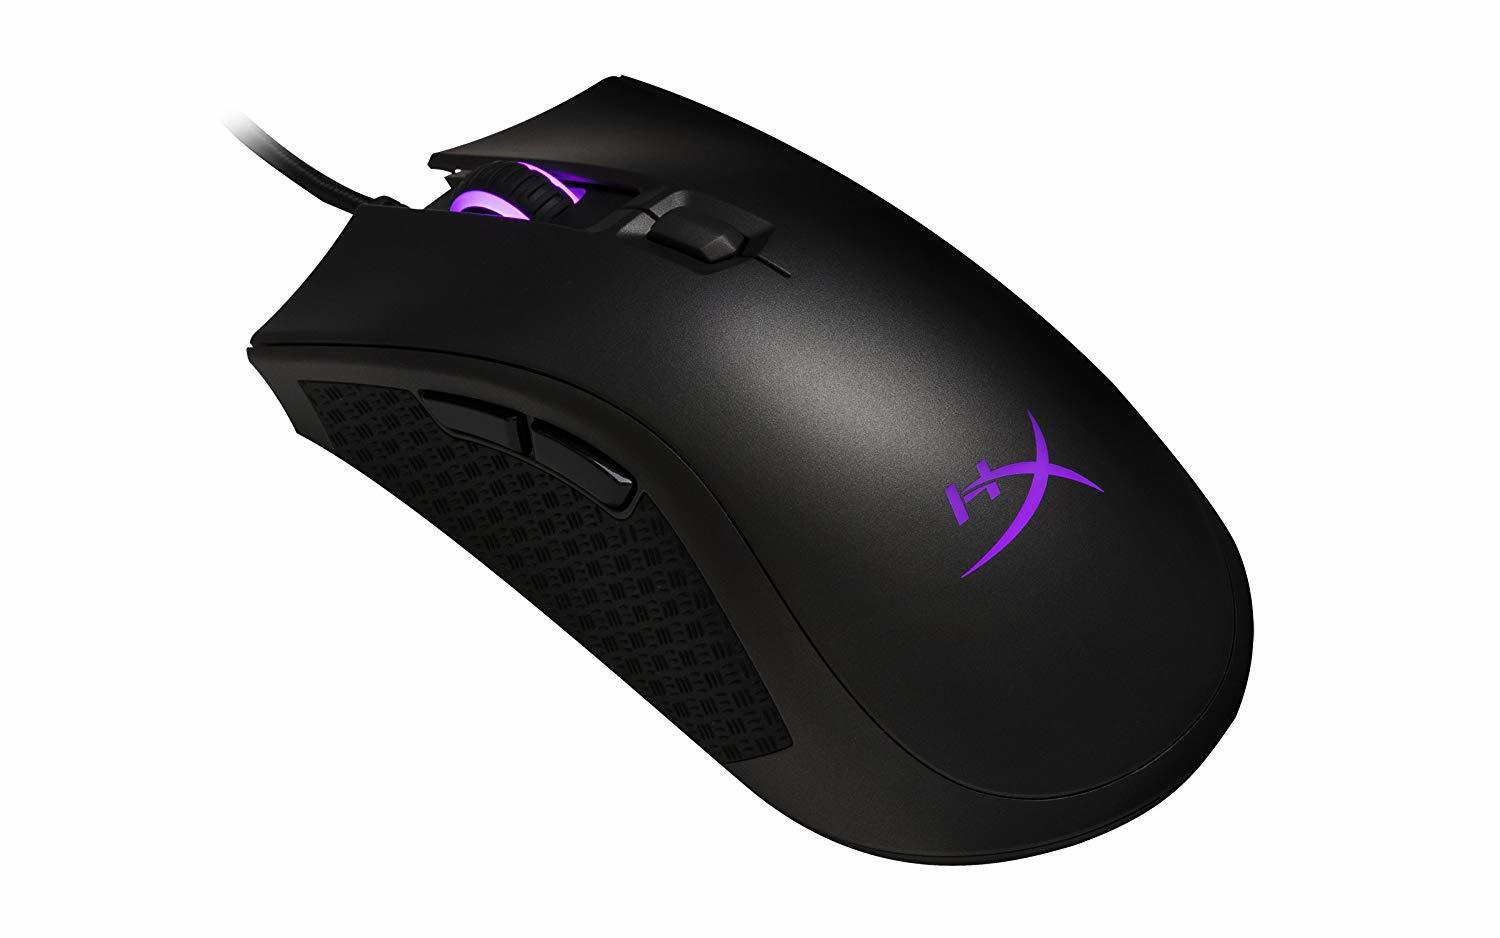 HyperX Pulsefire FPS Pro RGB Gaming Mouse for PC image